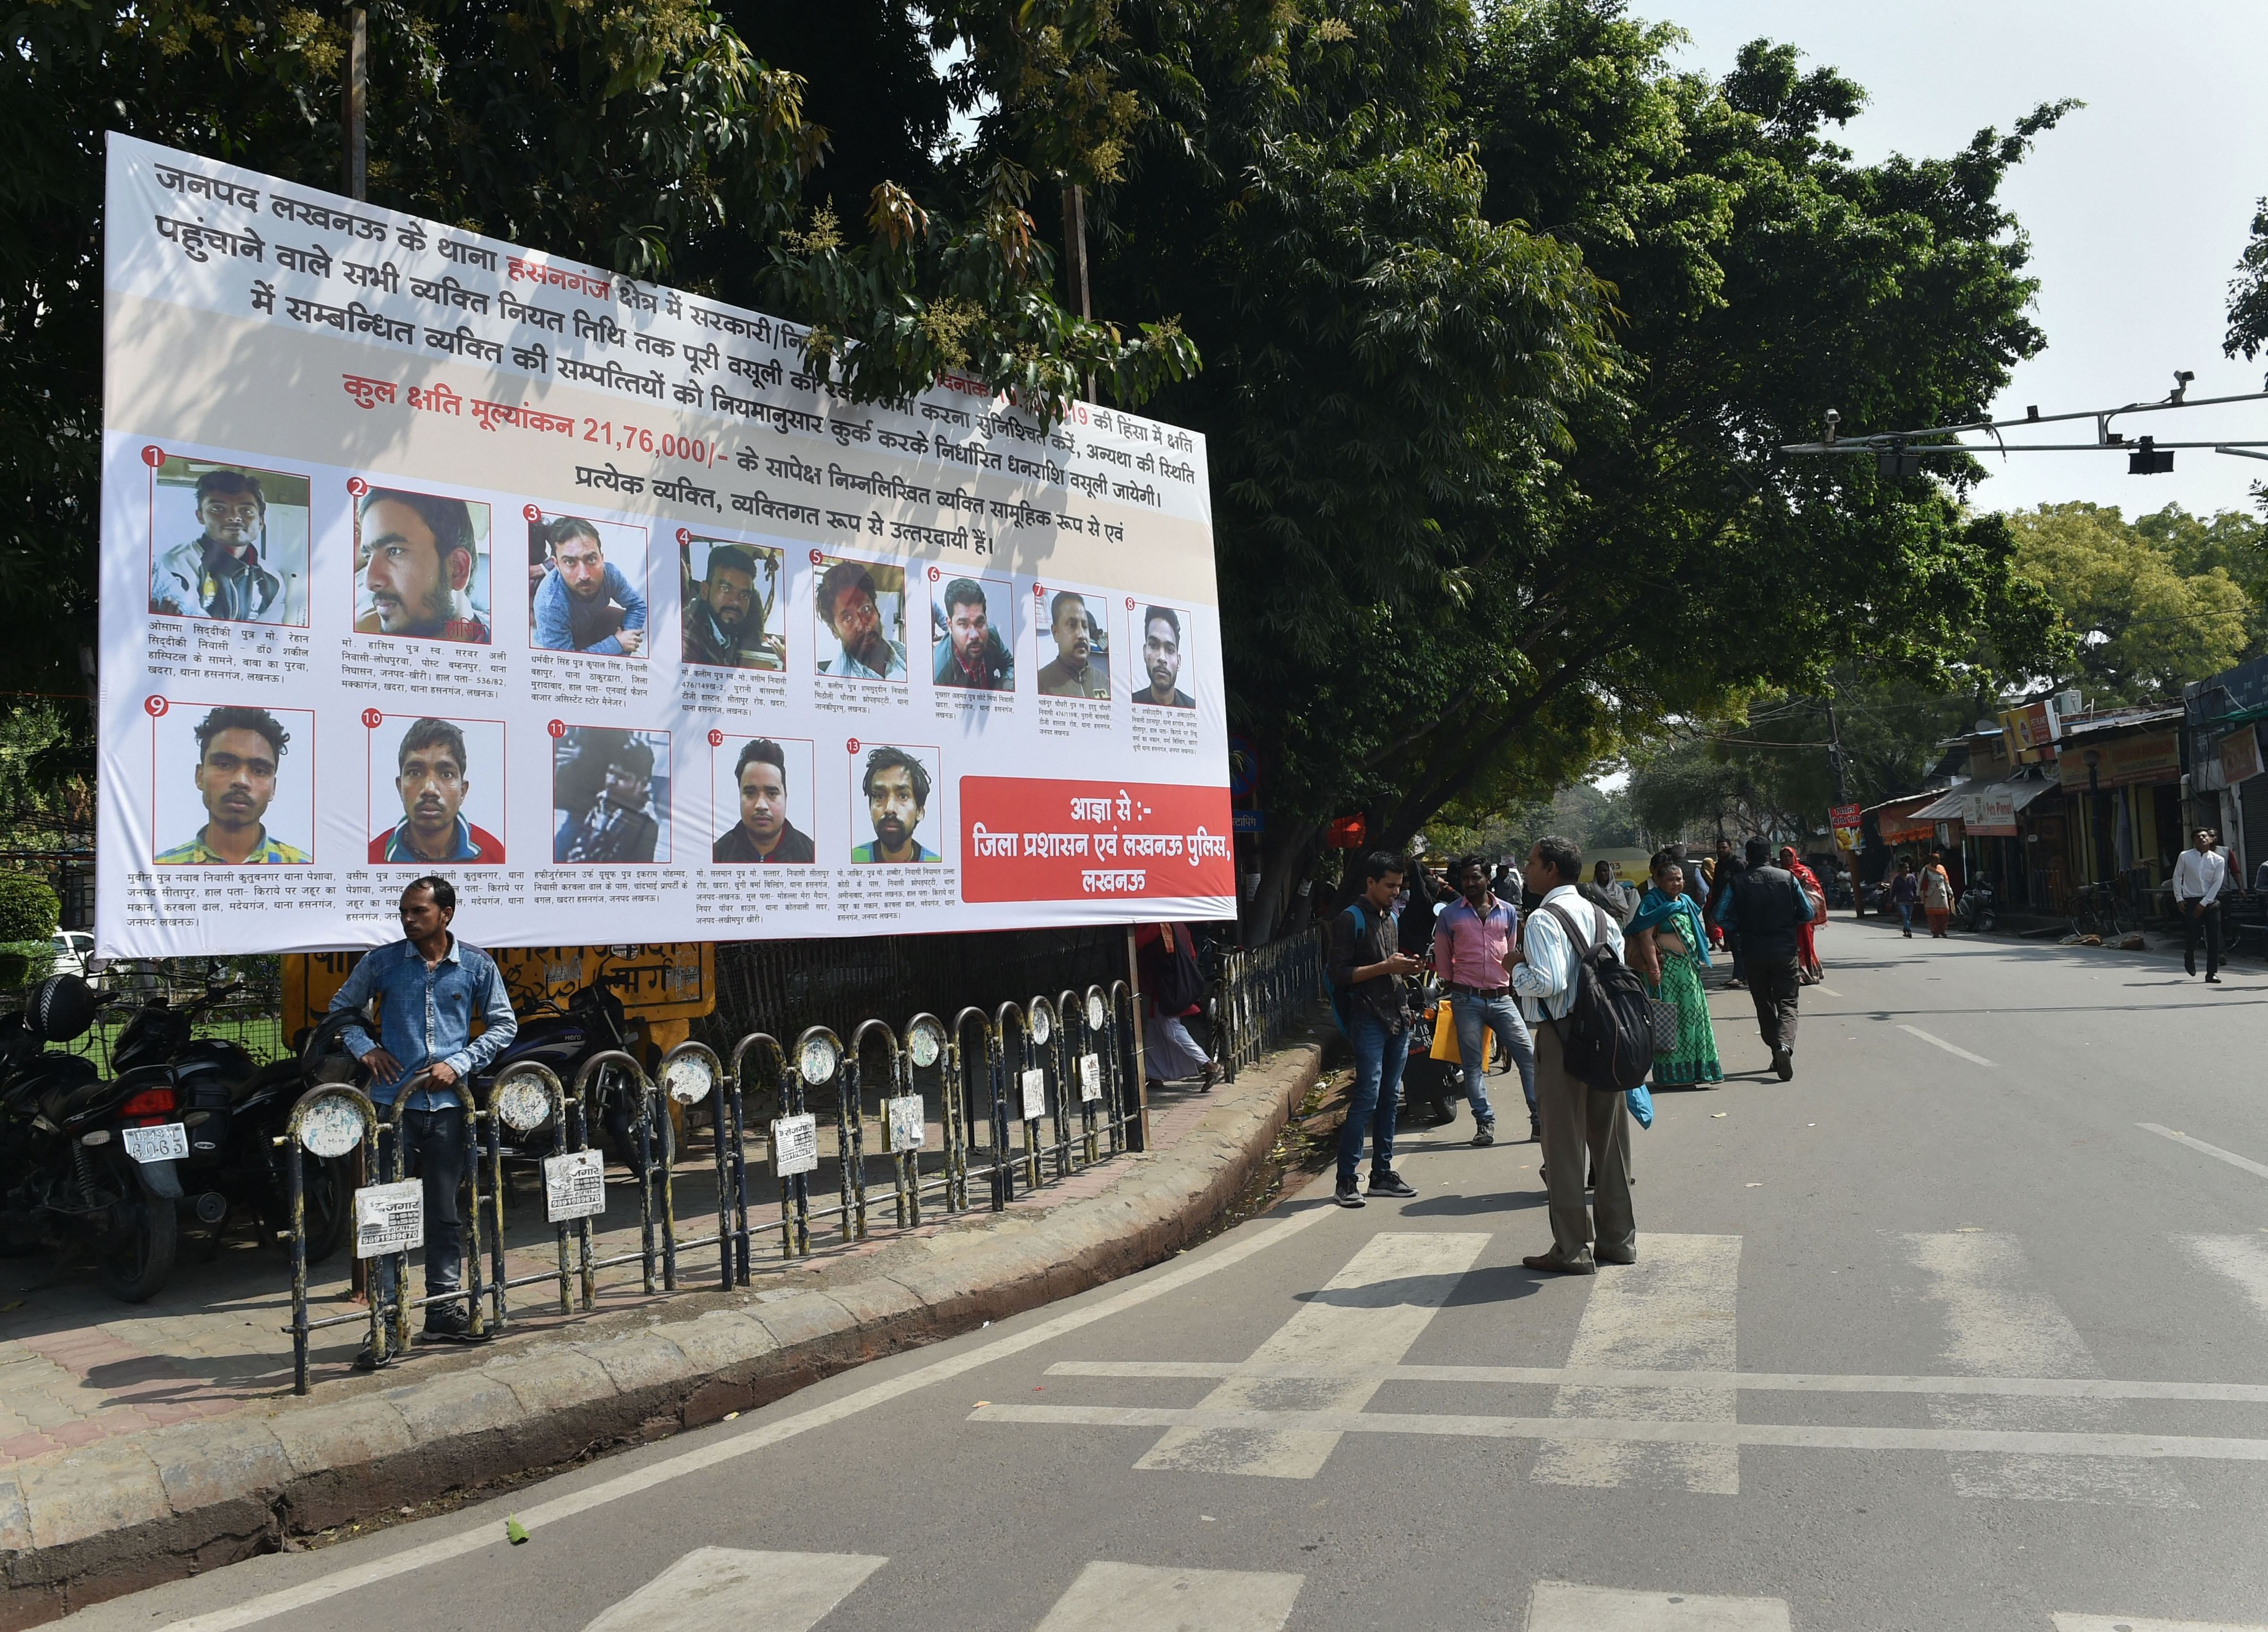 People walk past a poster displaying photographs of those who have been identified to pay the compensation for vandalizing public properties during protests against CAA, in Lucknow, Friday, March 6, 2020